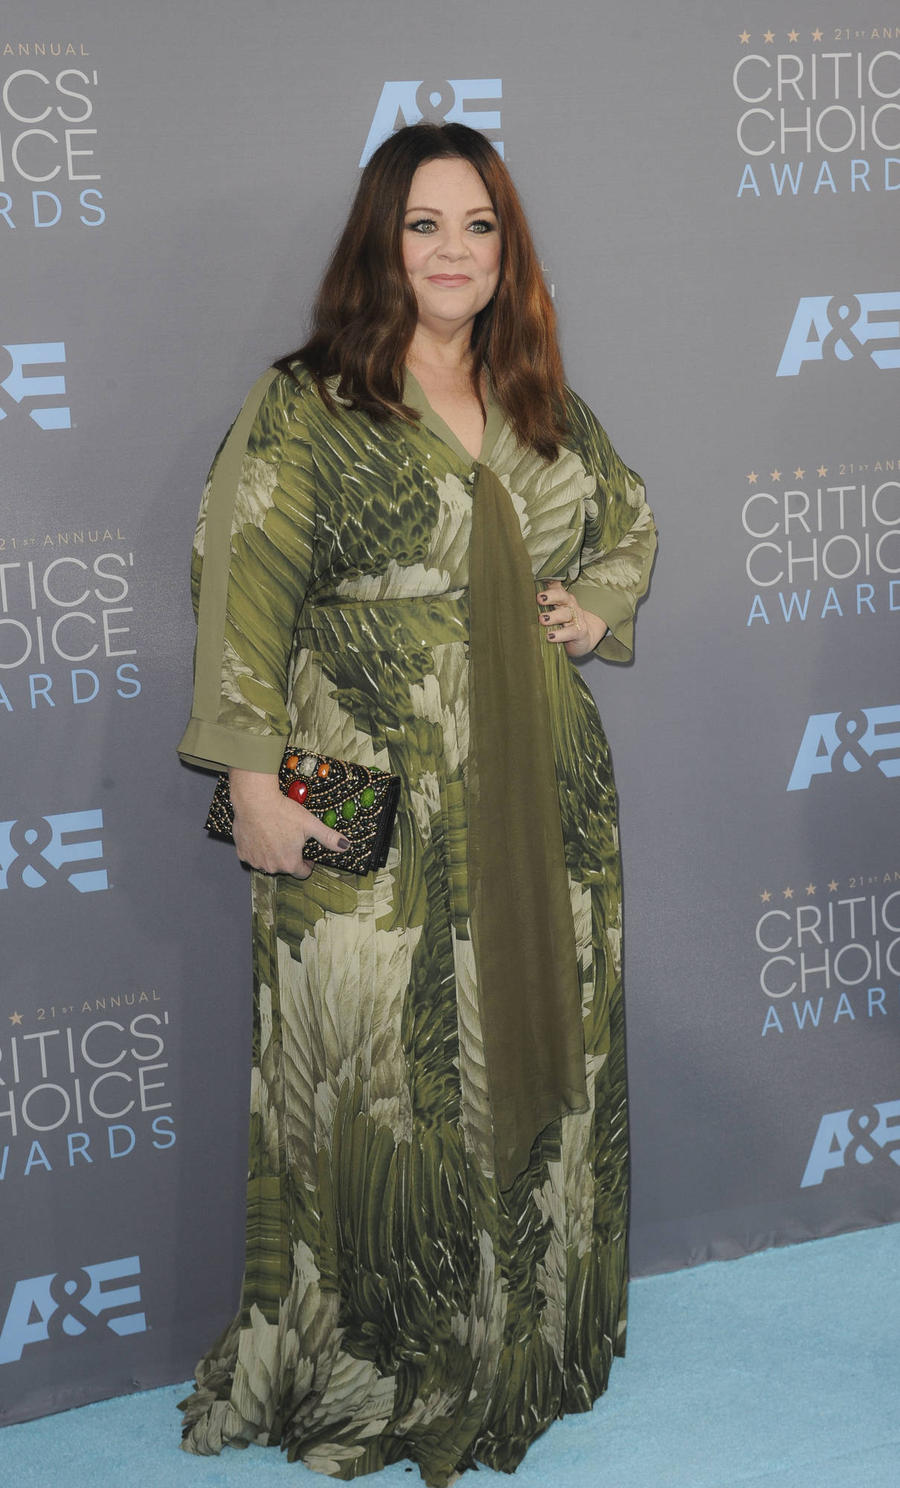 Melissa Mccarthy: 'I Lost 50 Pounds On The Boring Life Diet'